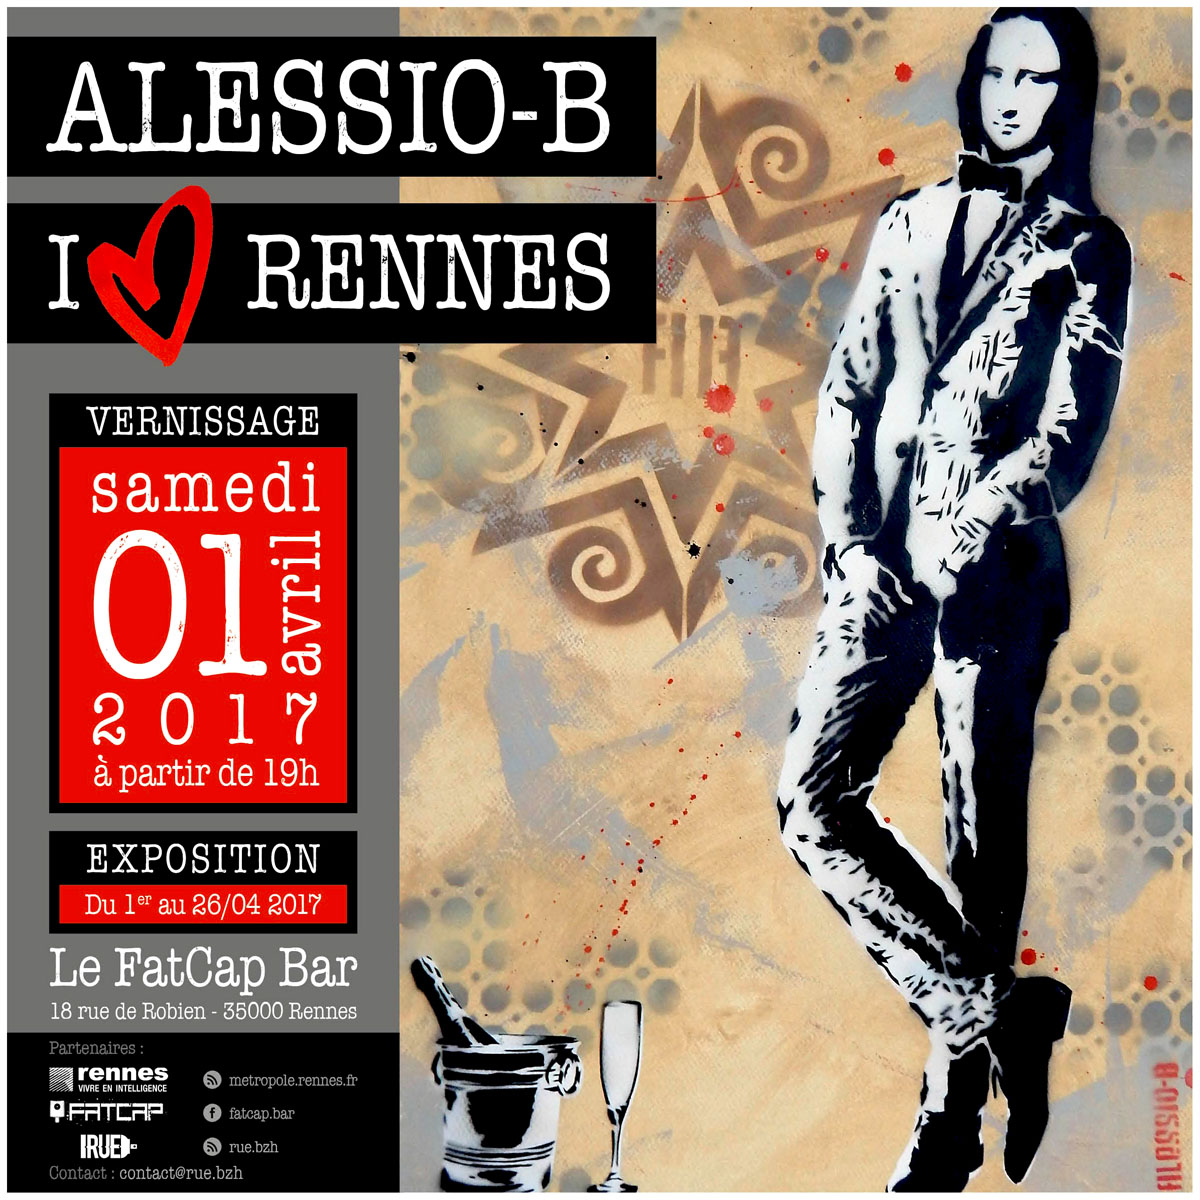 Alessio-B Limited Edition